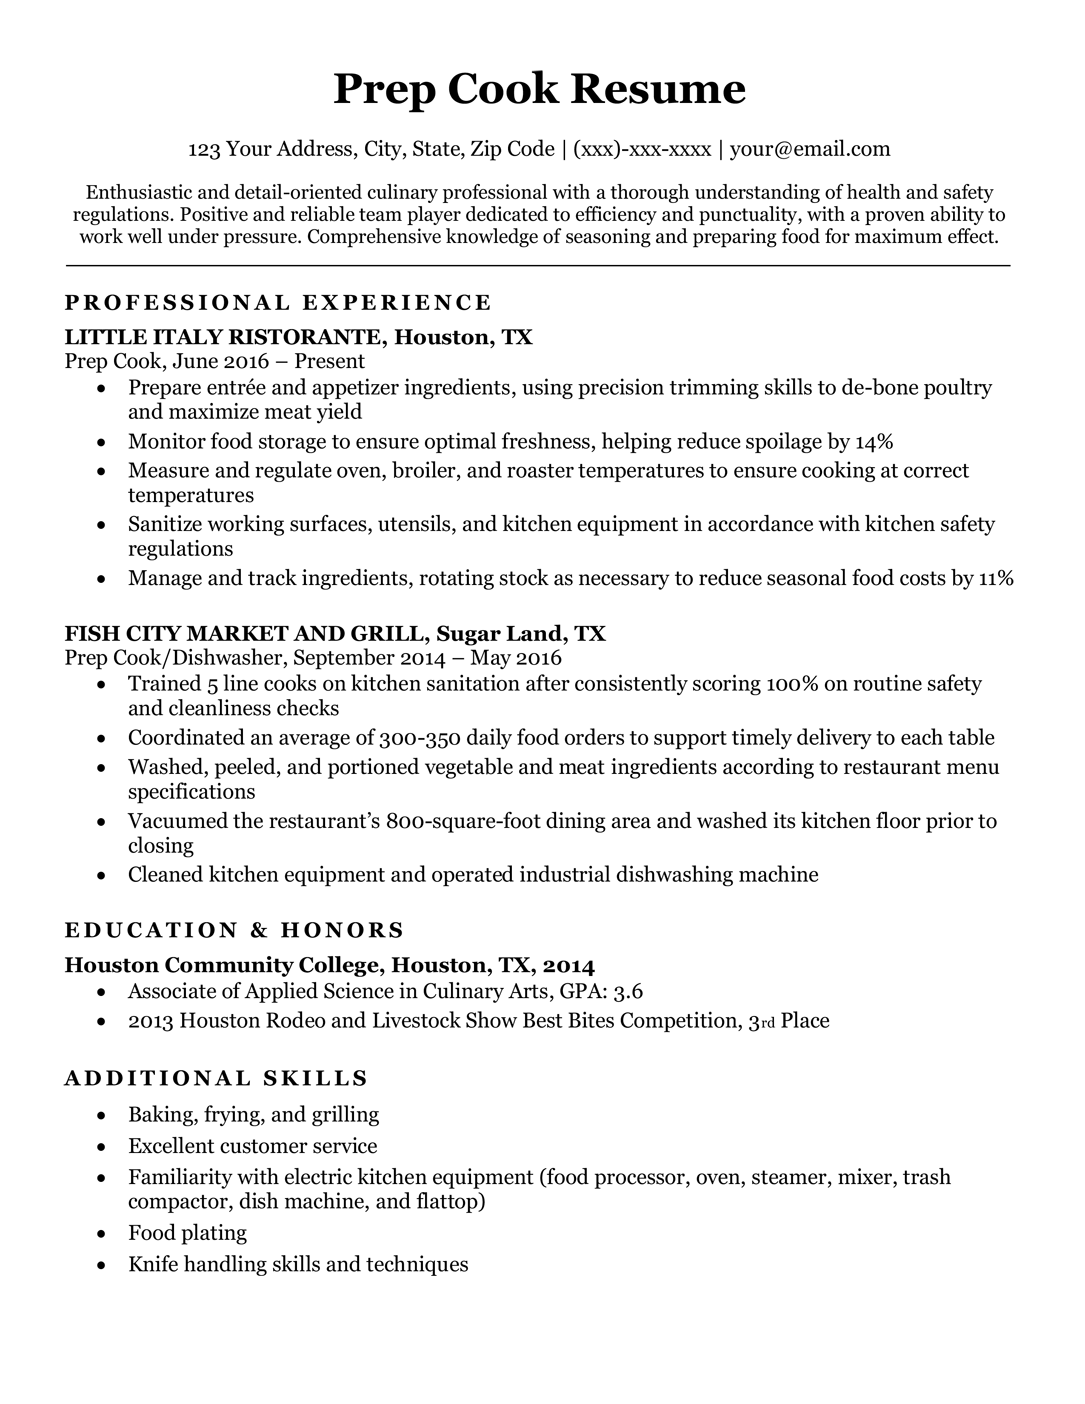 Changing career to manager job or management position resume objective. Prep Cook Resume Sample Writing Tips Resume Companion